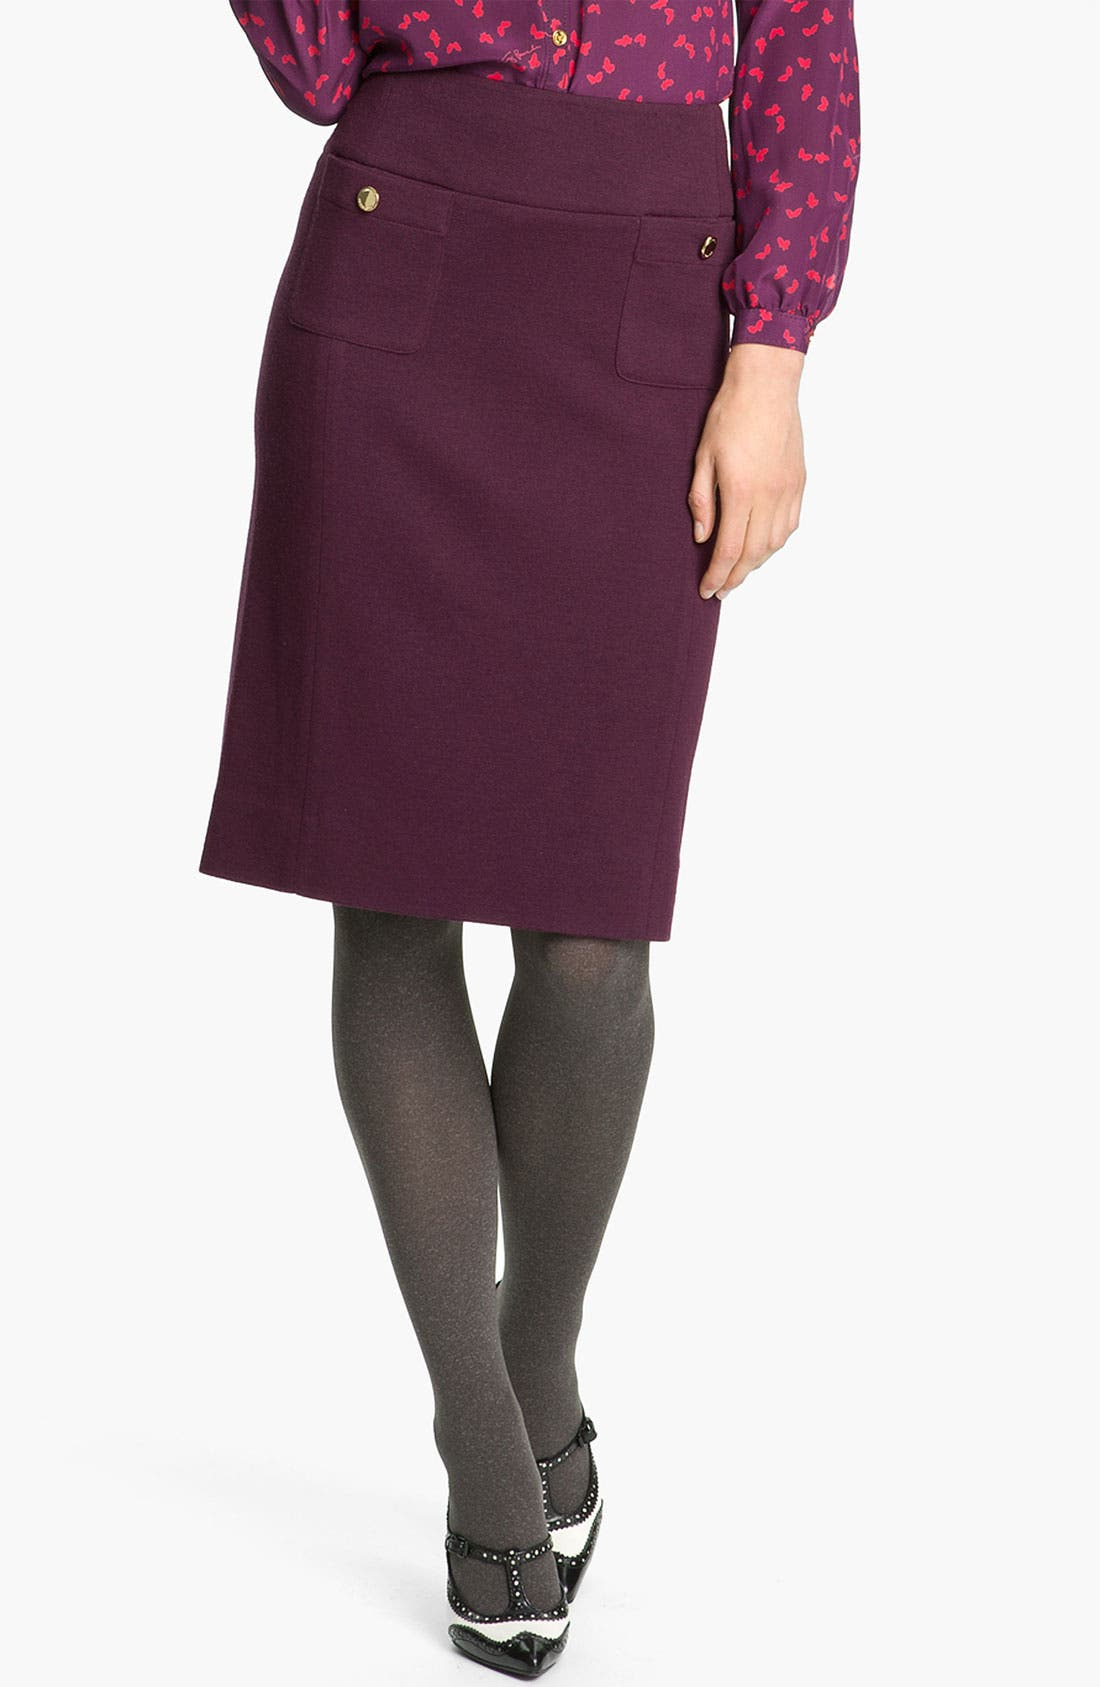 Main Image - Tory Burch 'Anthea' Pencil Skirt